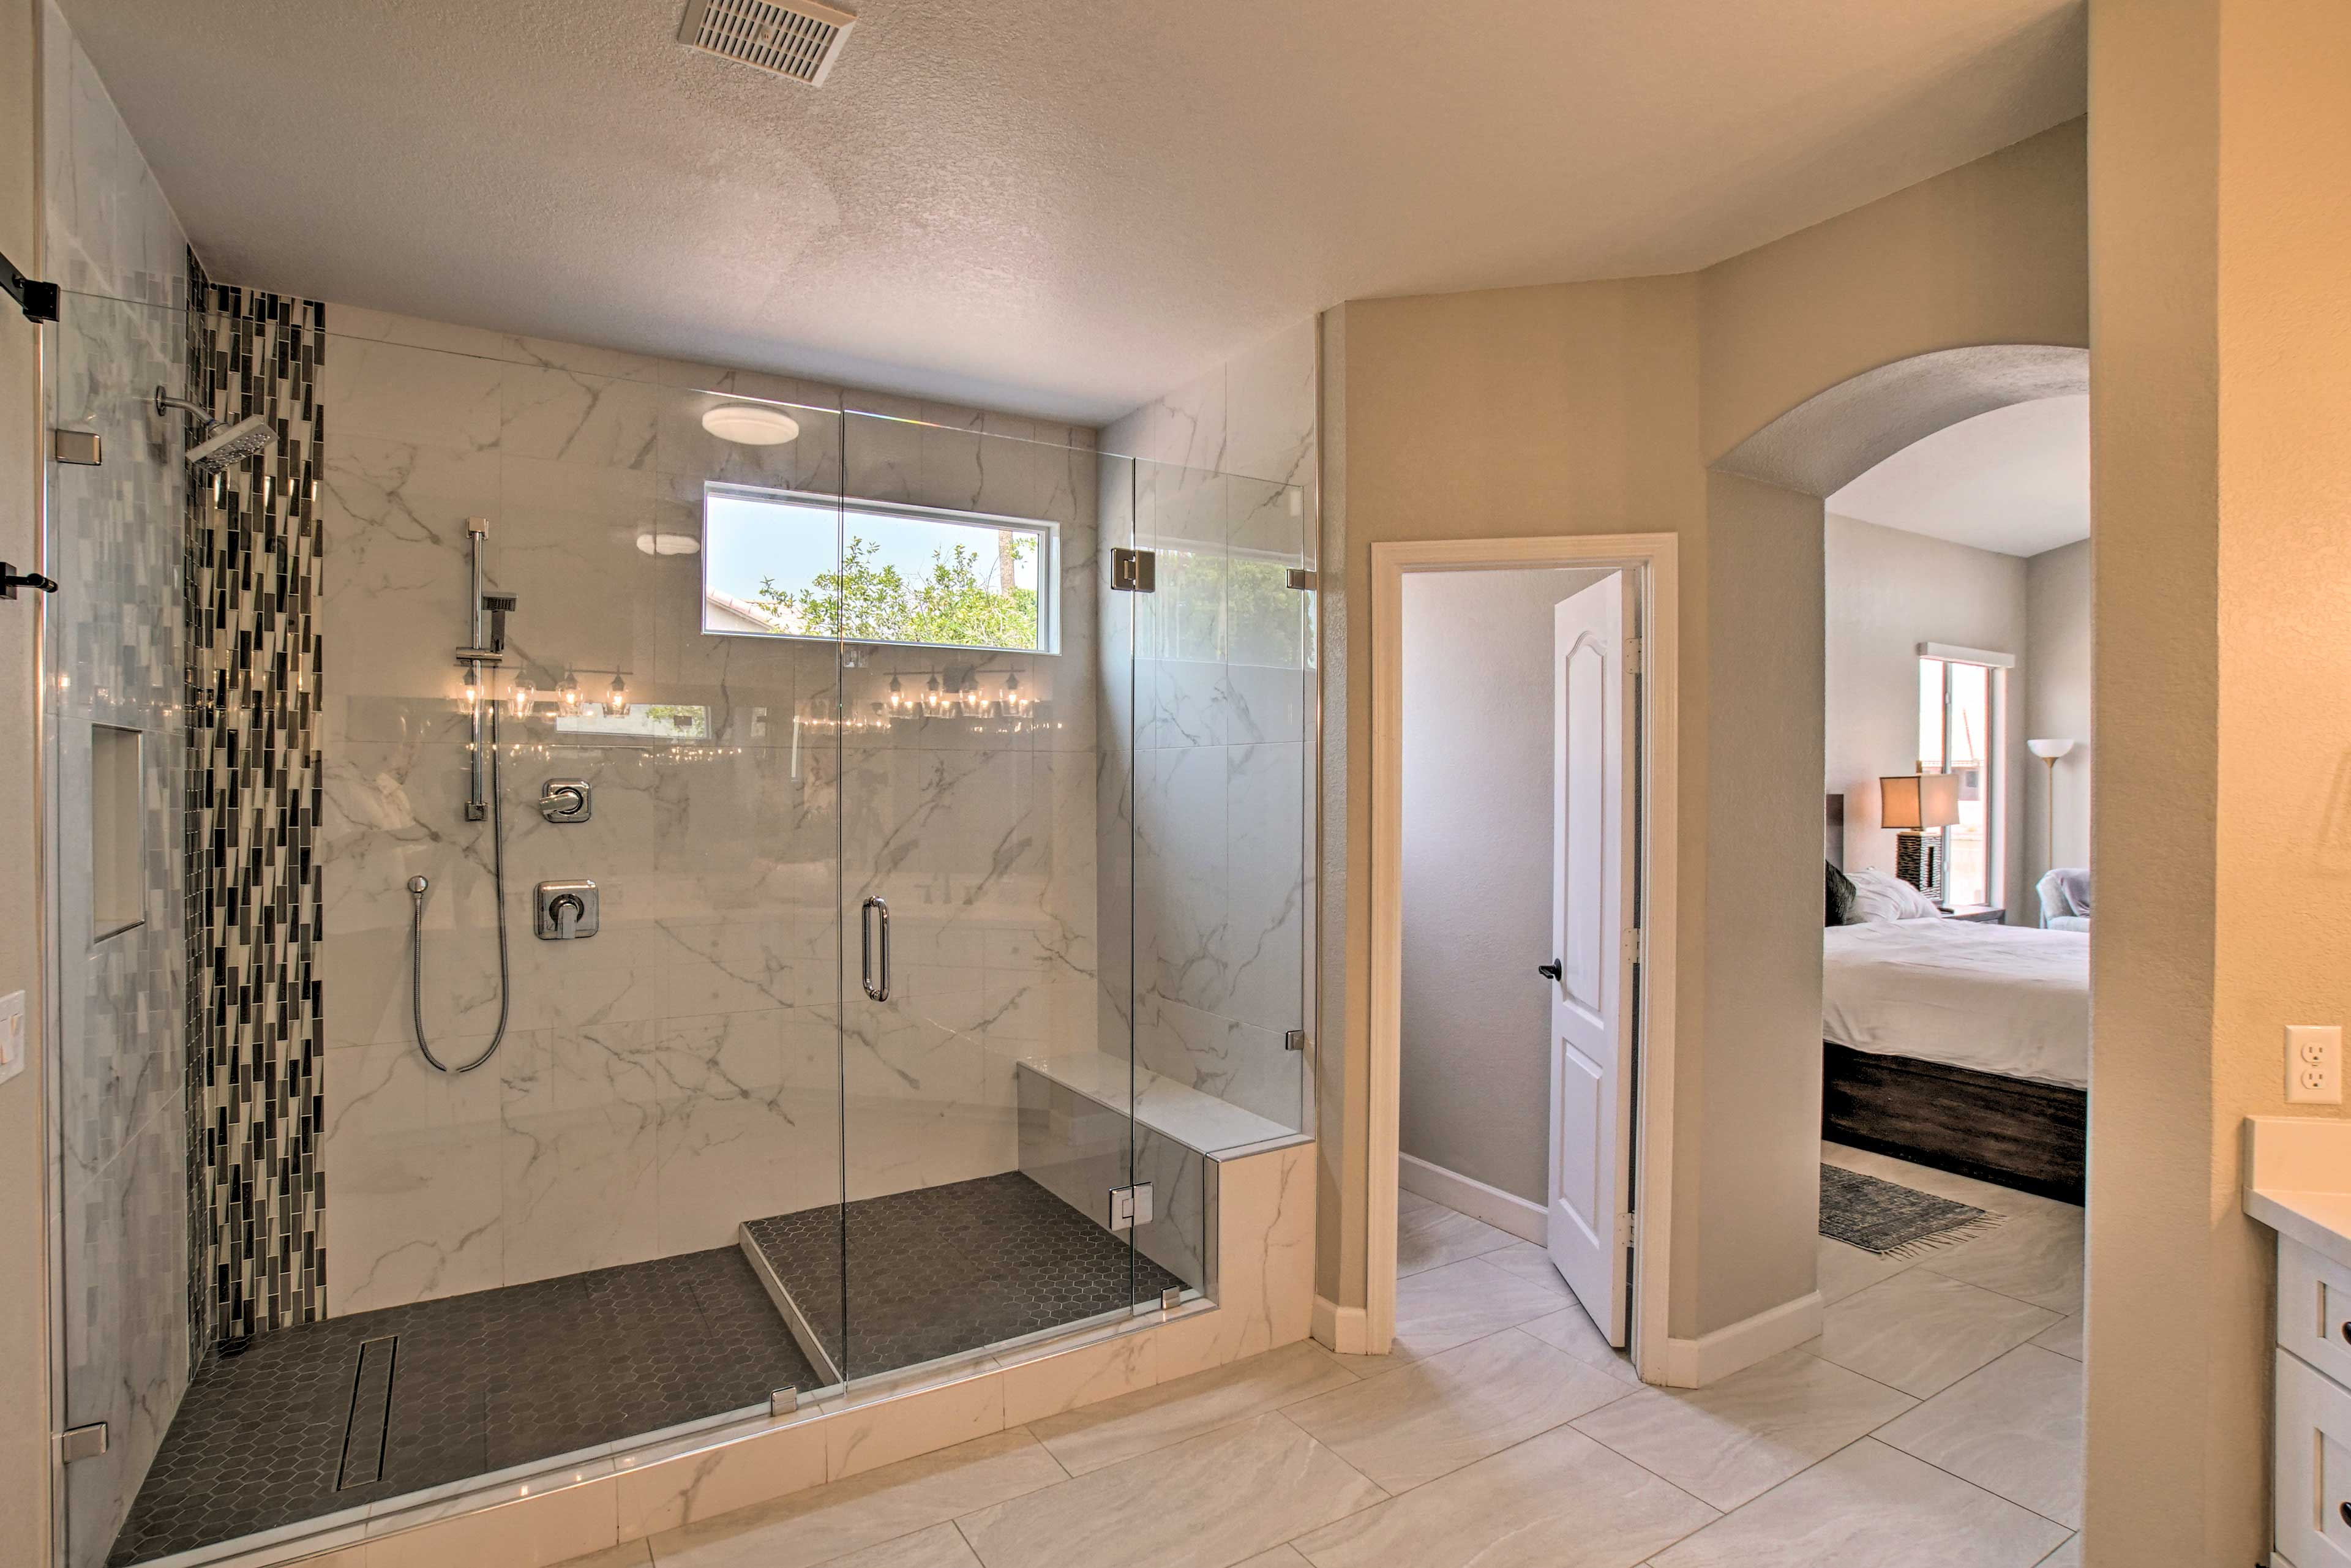 Full Bathroom   Complimentary Toiletries   Towels Provided